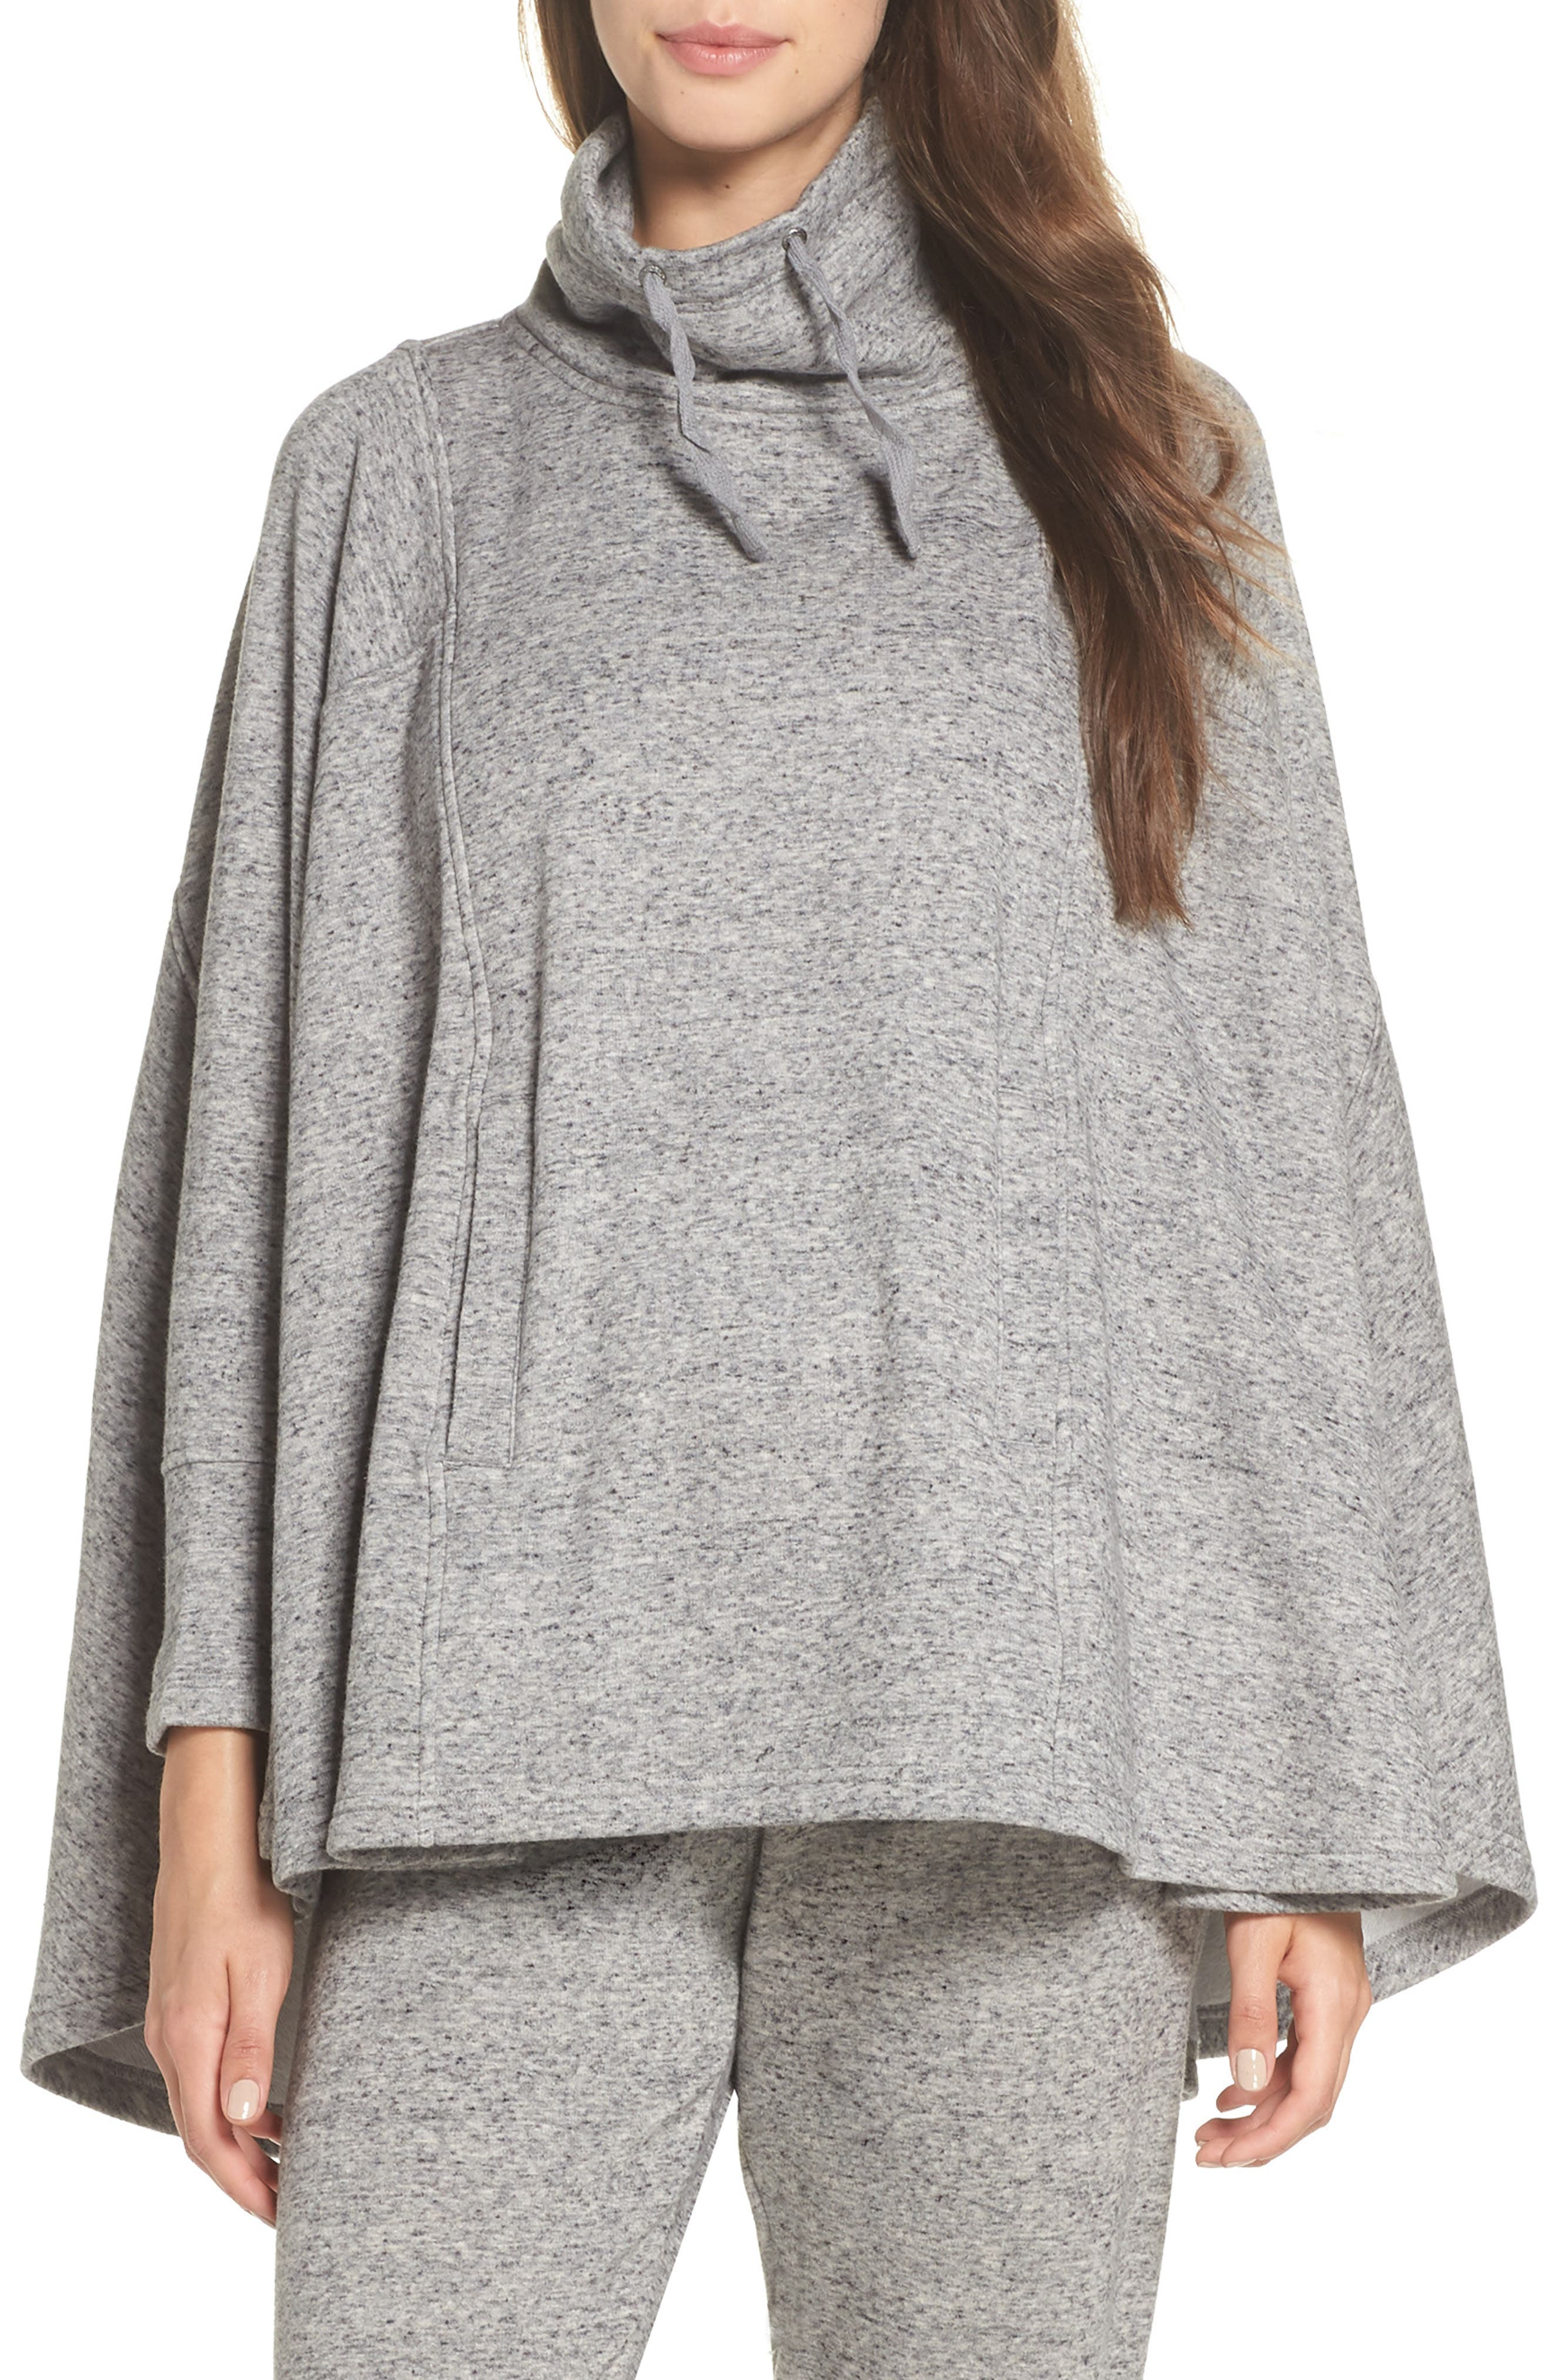 Pichot Turtleneck Poncho,                         Main,                         color, GREY HEATHER